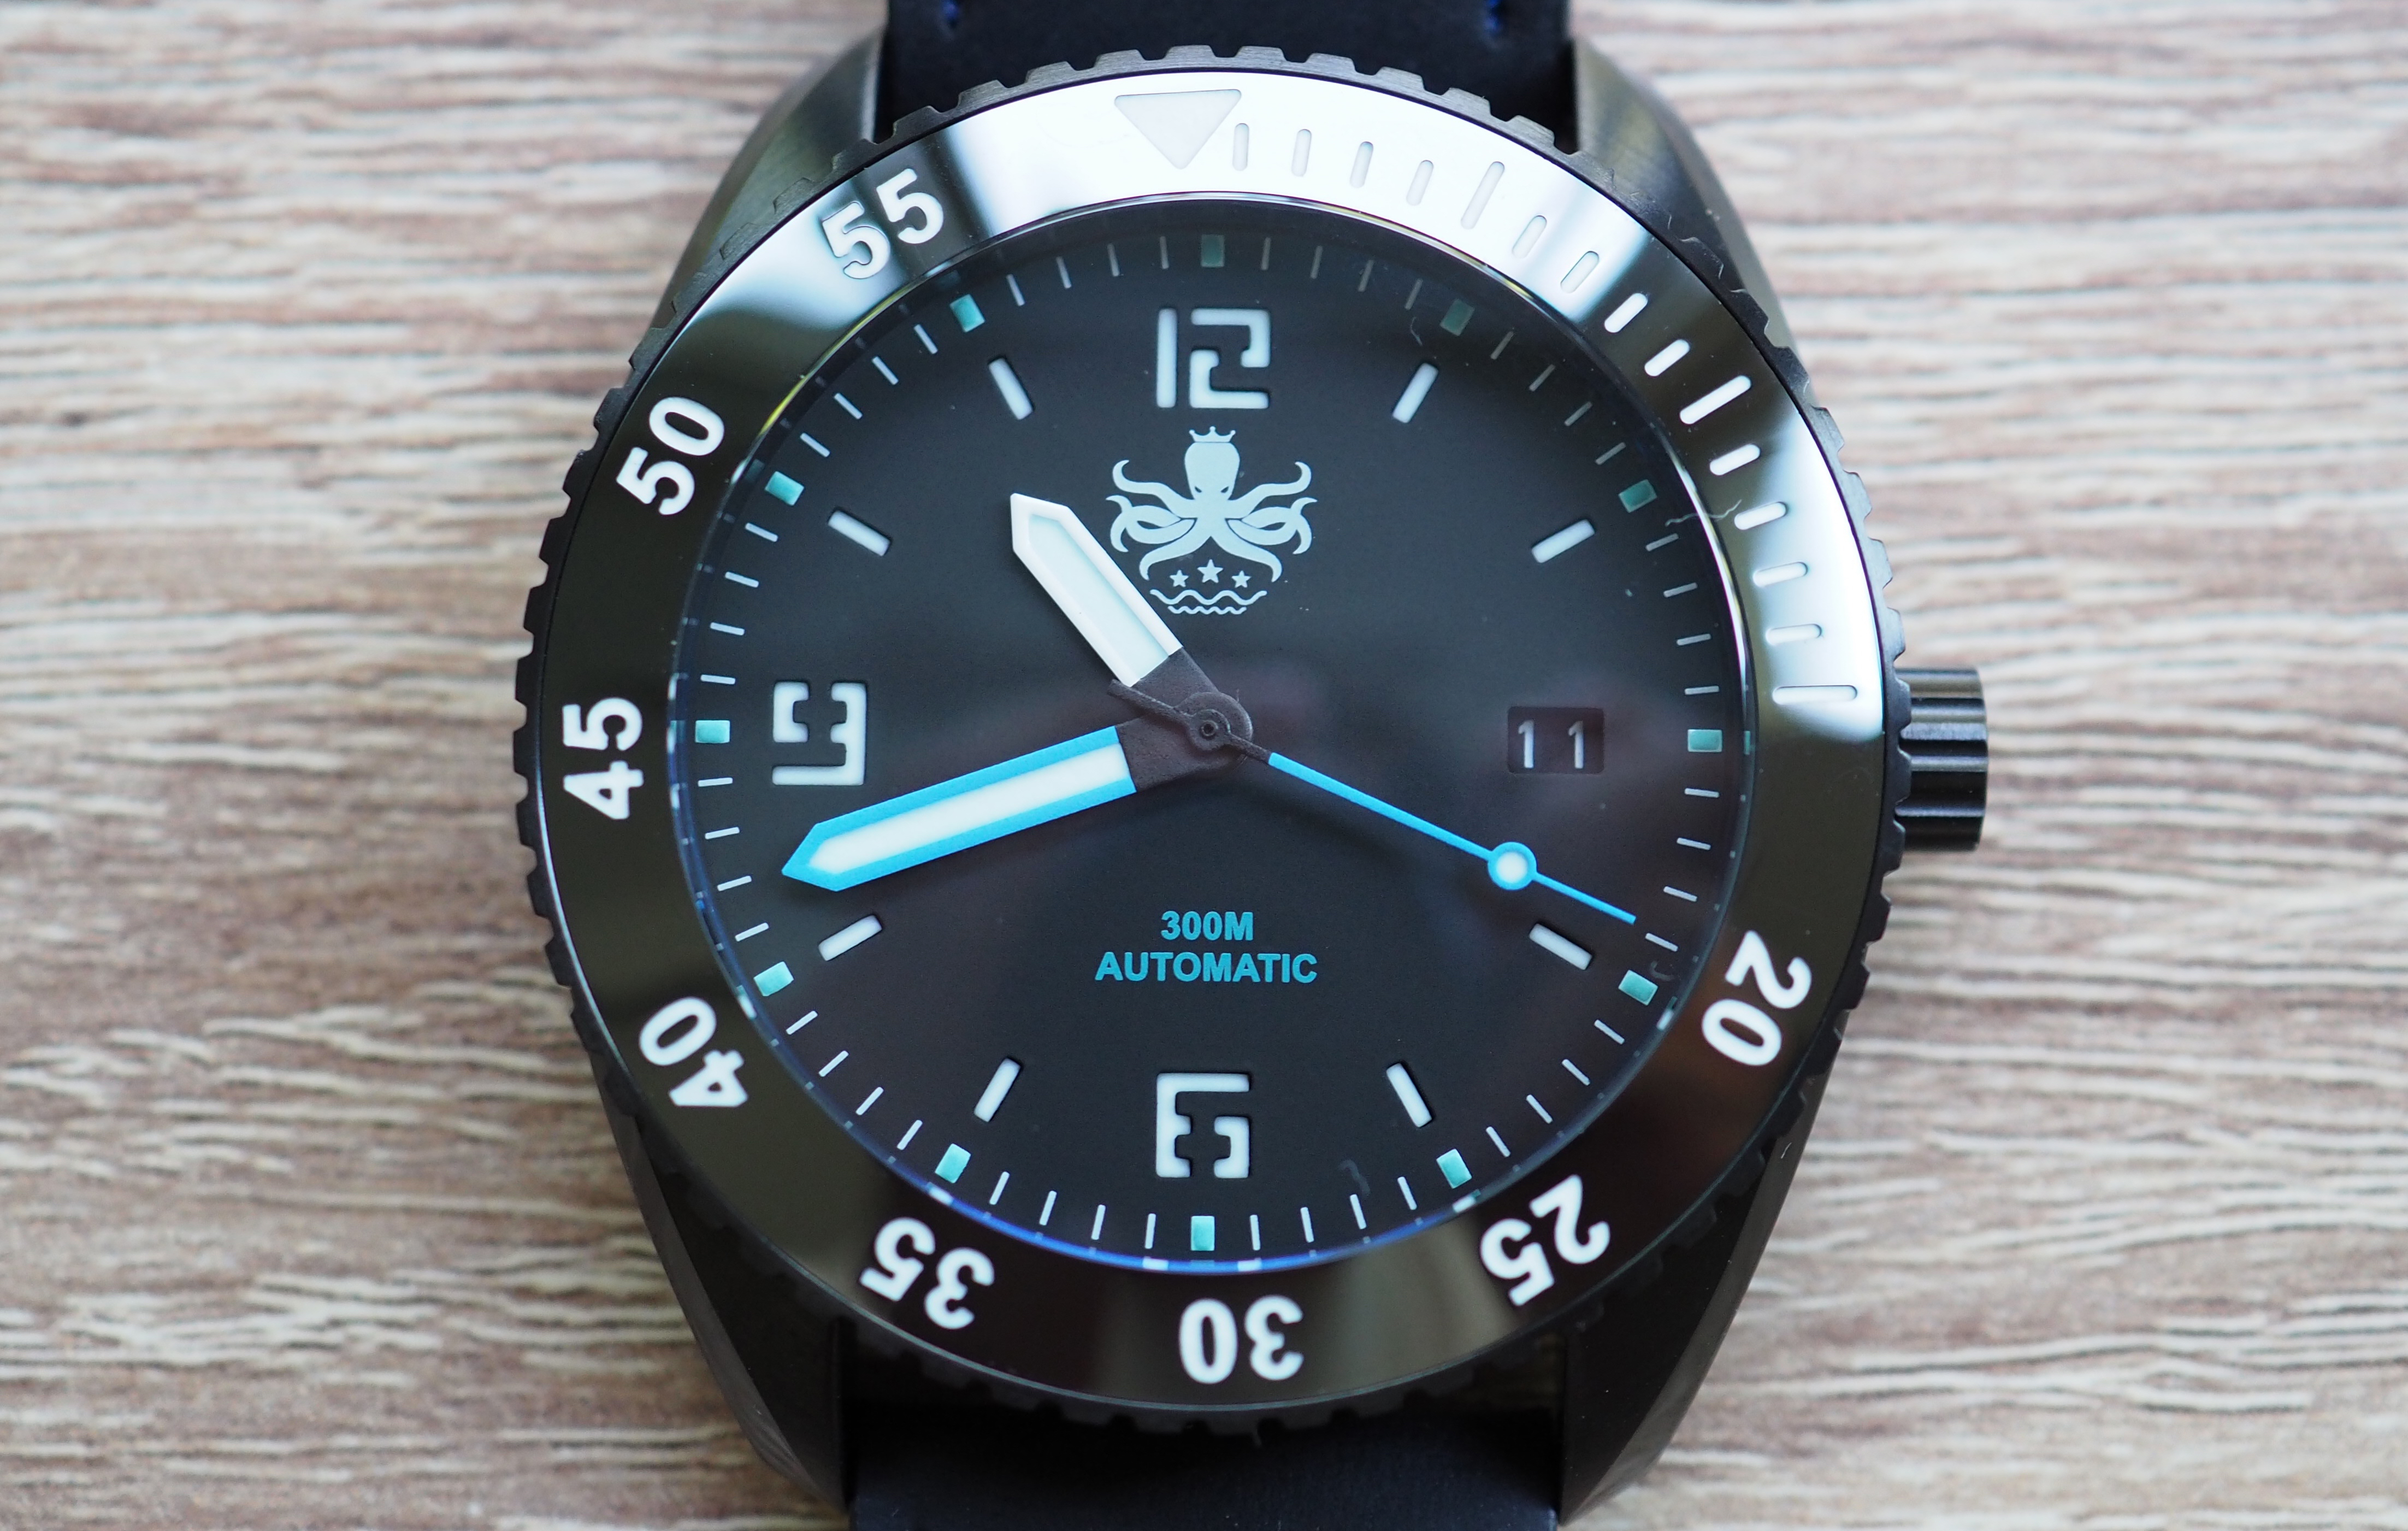 4618d1ab4a2 Phoibos Reef Master PY015B DLC Watch Review - WatchReviewBlog